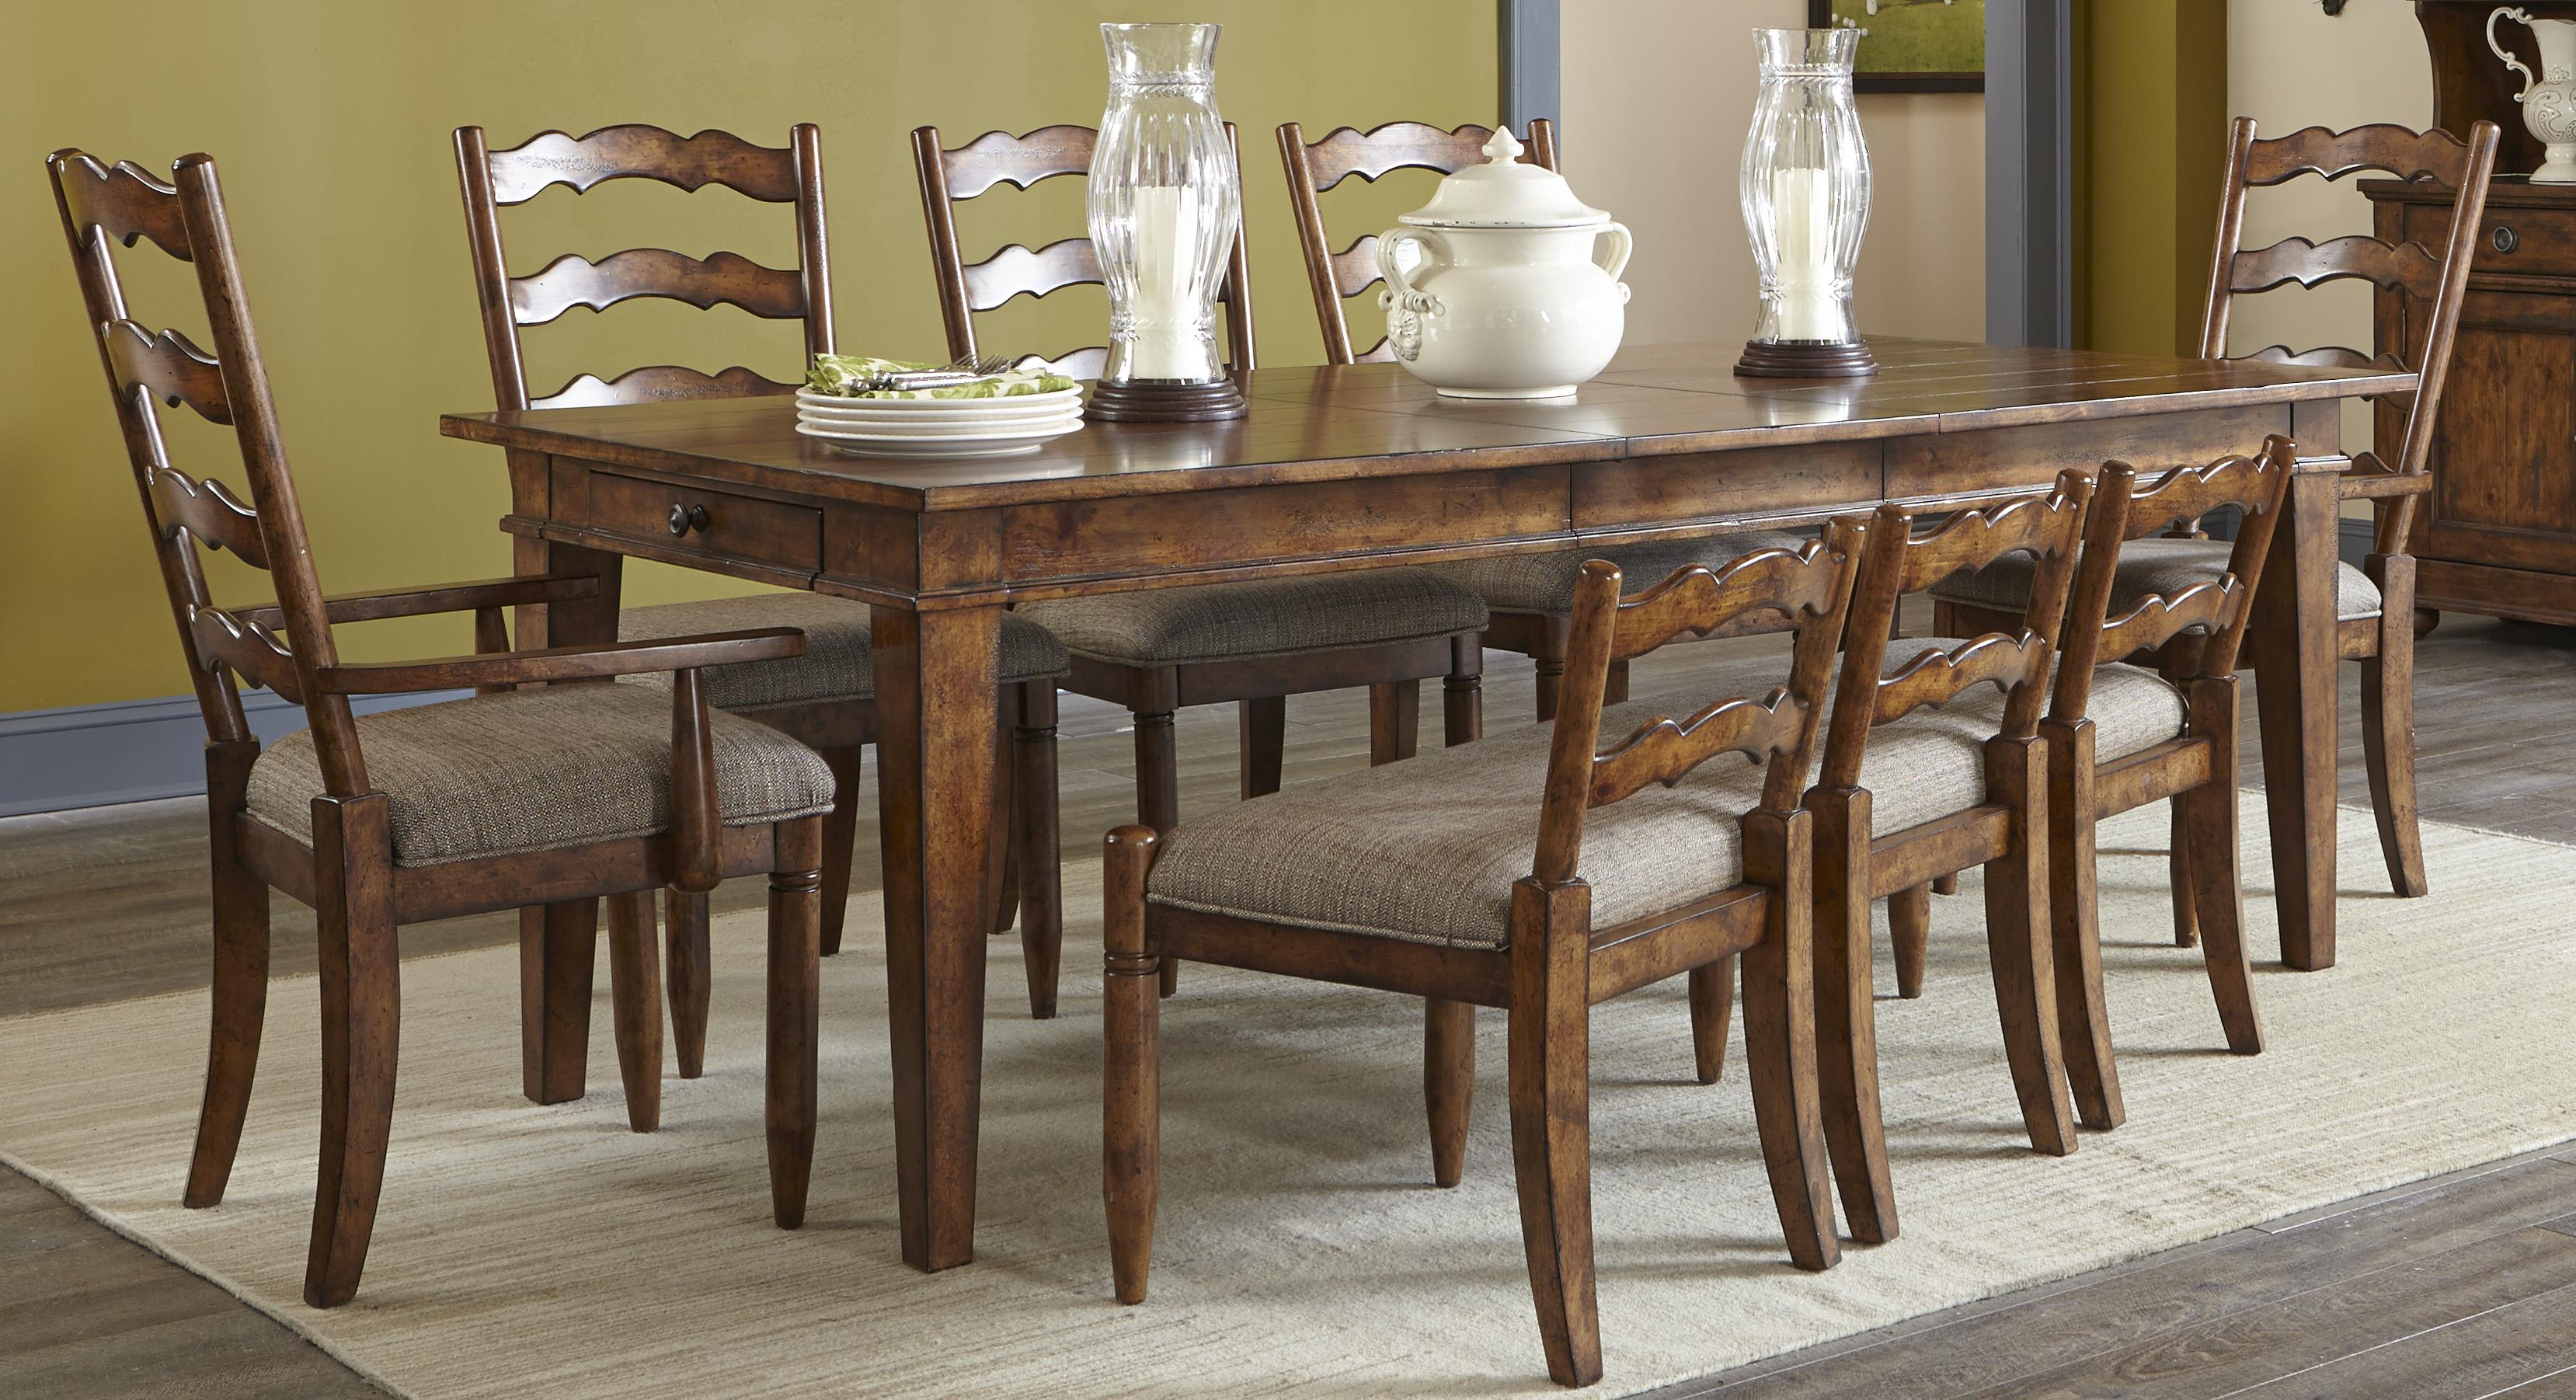 Elliston Place Willow Creek Willow Creek 5-Piece Dining Set - Item Number: 358827306